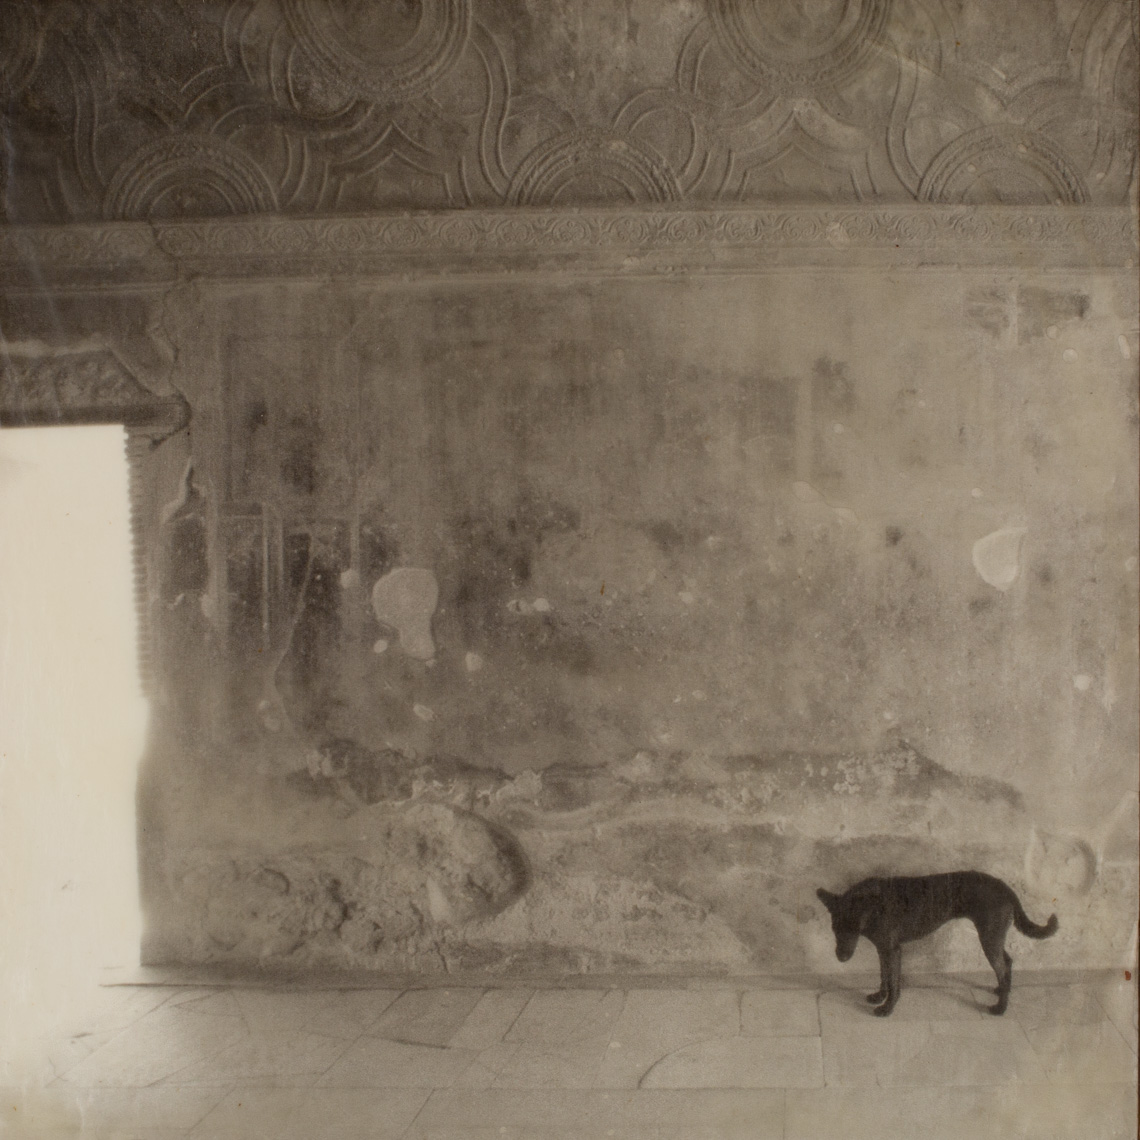 Pompeii, Stray Dog